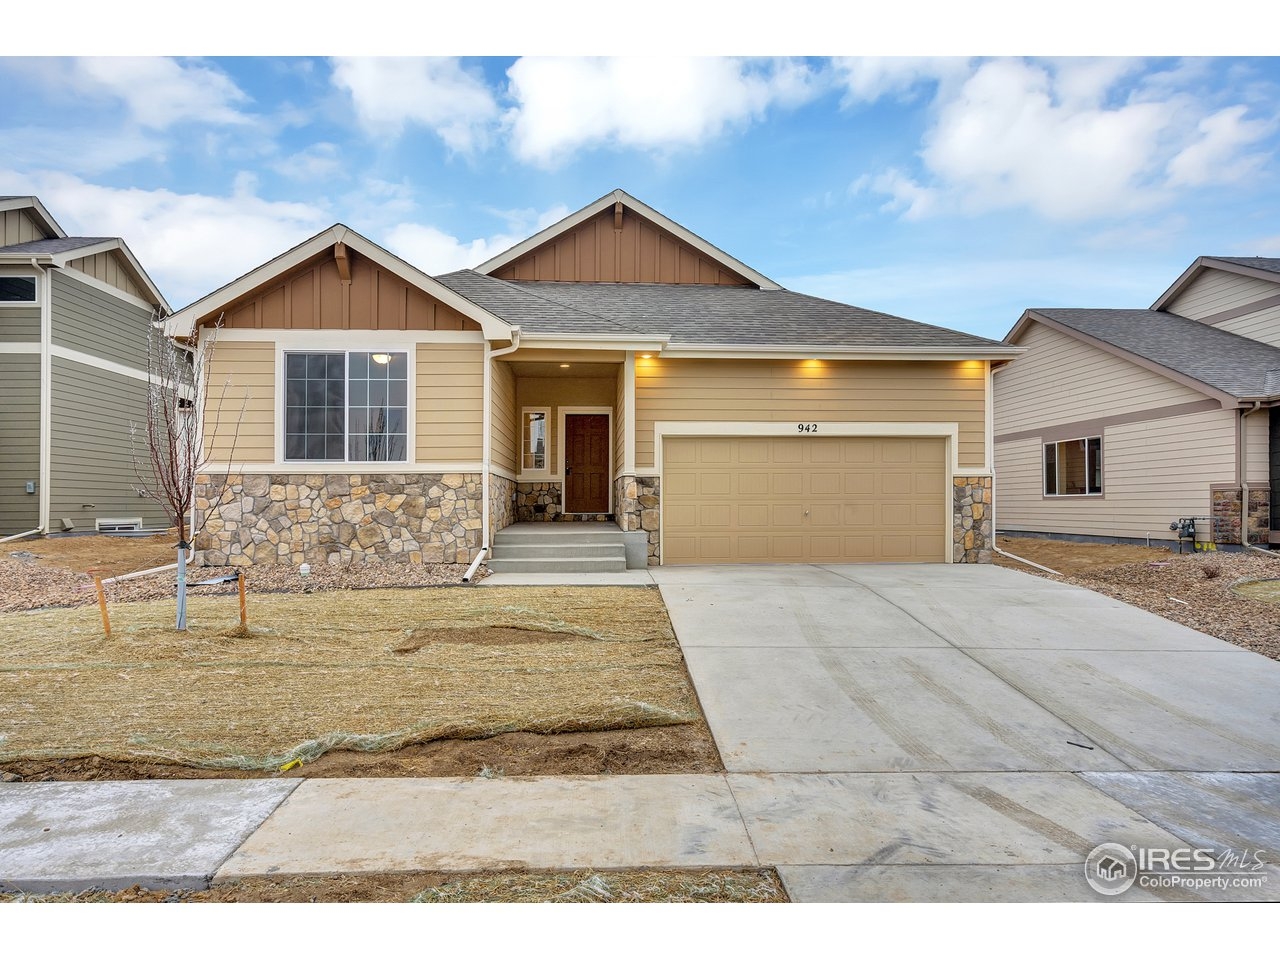 8805 13th St, Greeley CO 80634